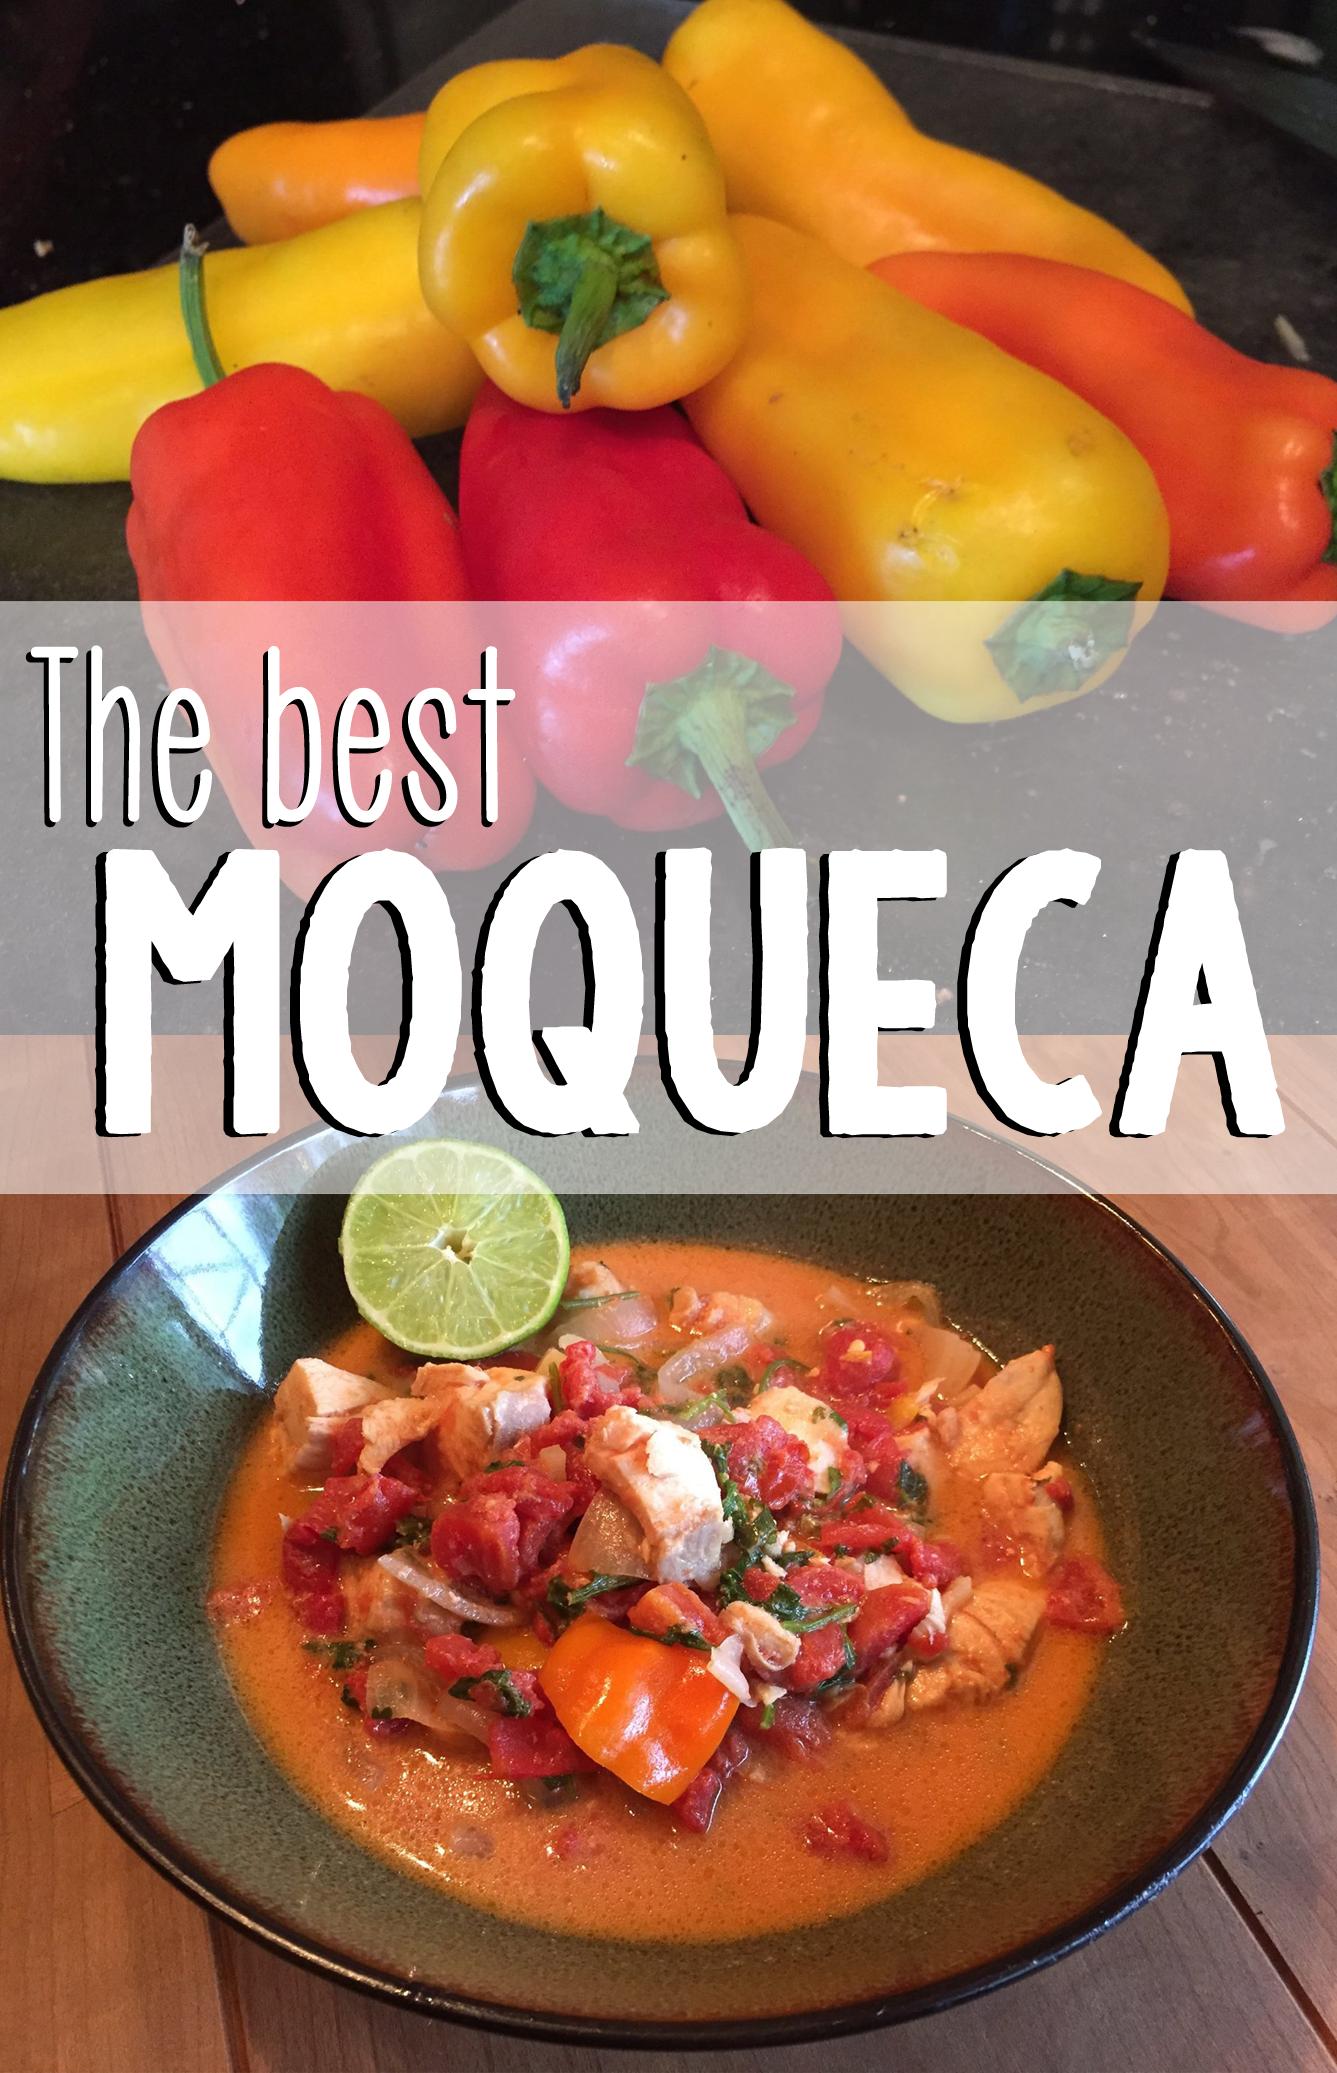 The best brazilian moqueca recipe! @caltonnutrition